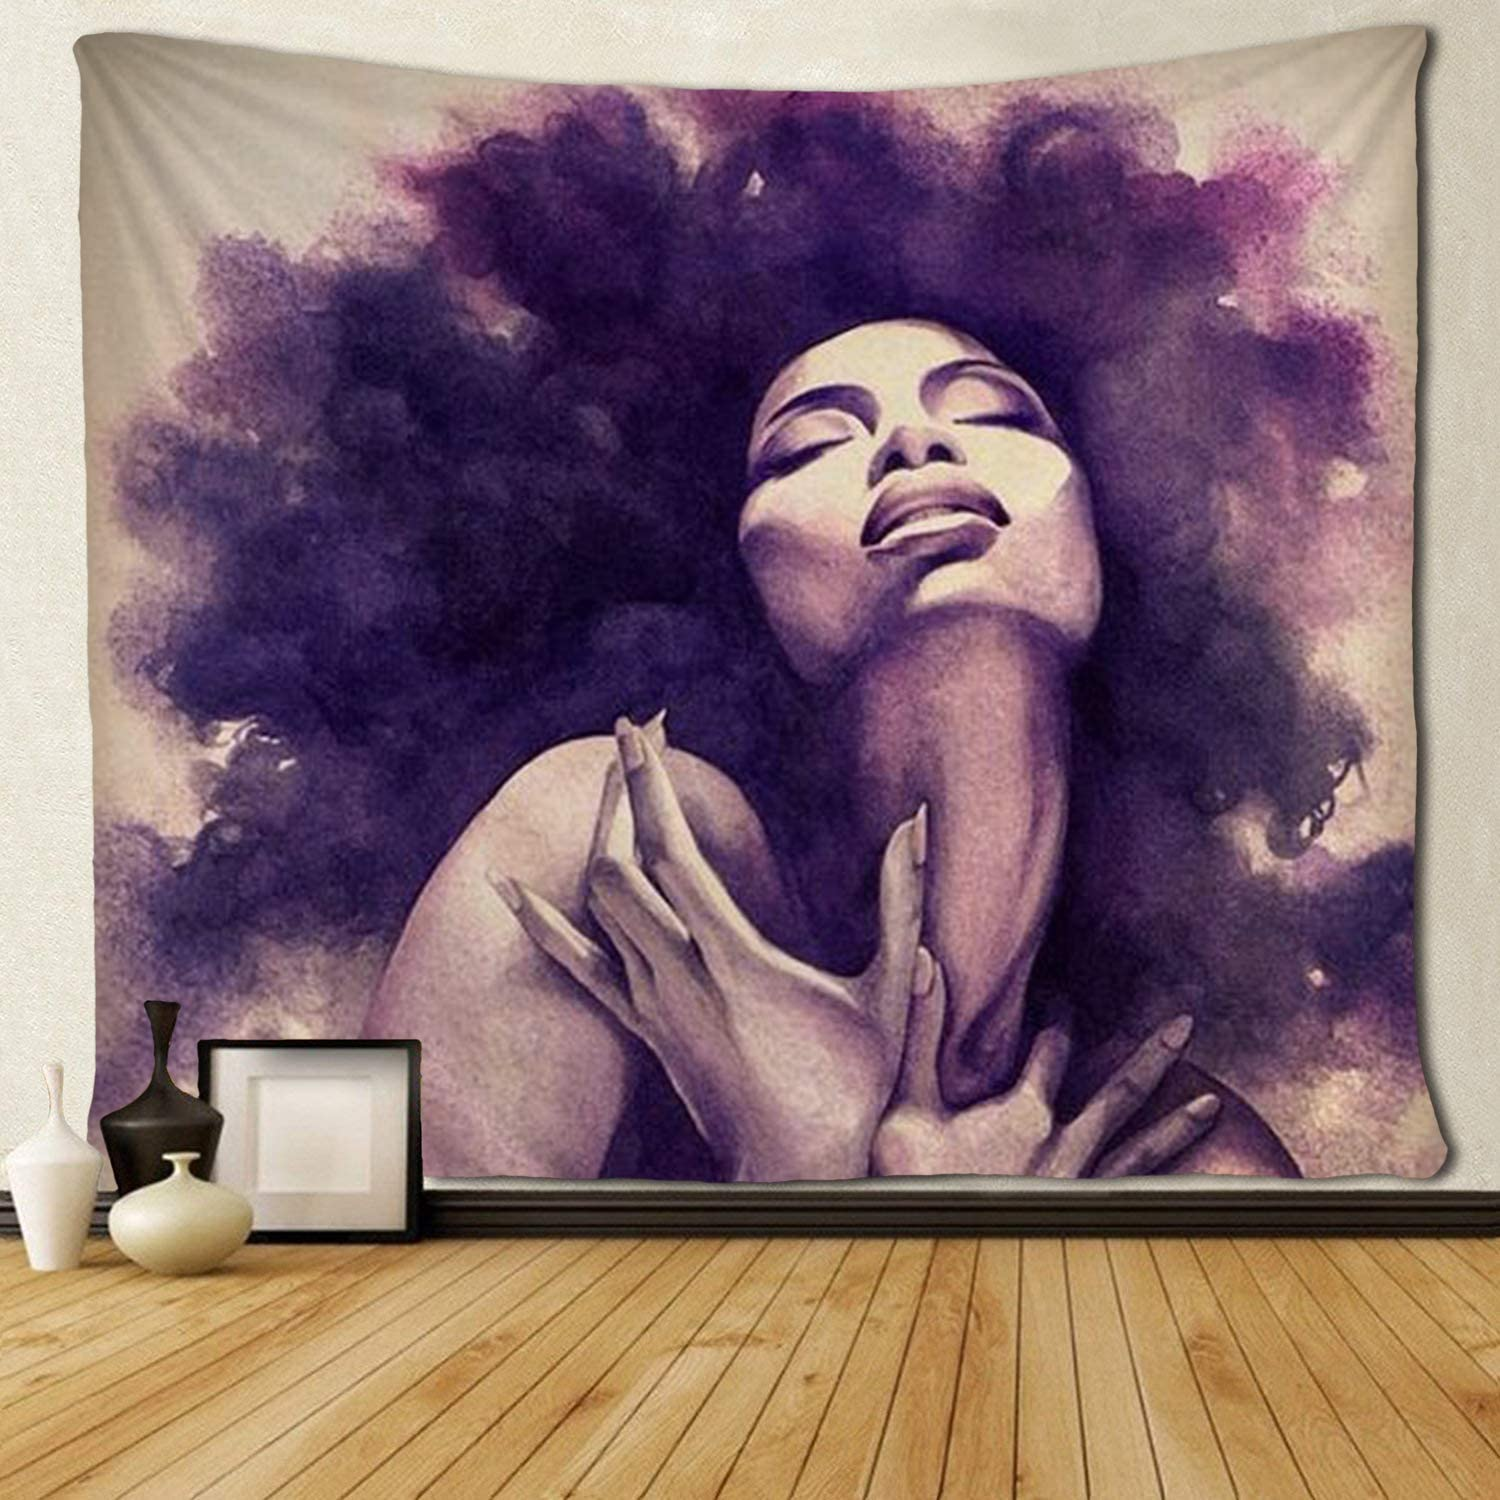 SARA NELL Black Art Wall Tapestry African American Sexy Women Lady Tapestries Hippie Afro Wall Hanging 50X60 Inches for Bedroom Living Room Dorm Room (6090 inch, American American Sexy Women Lady)